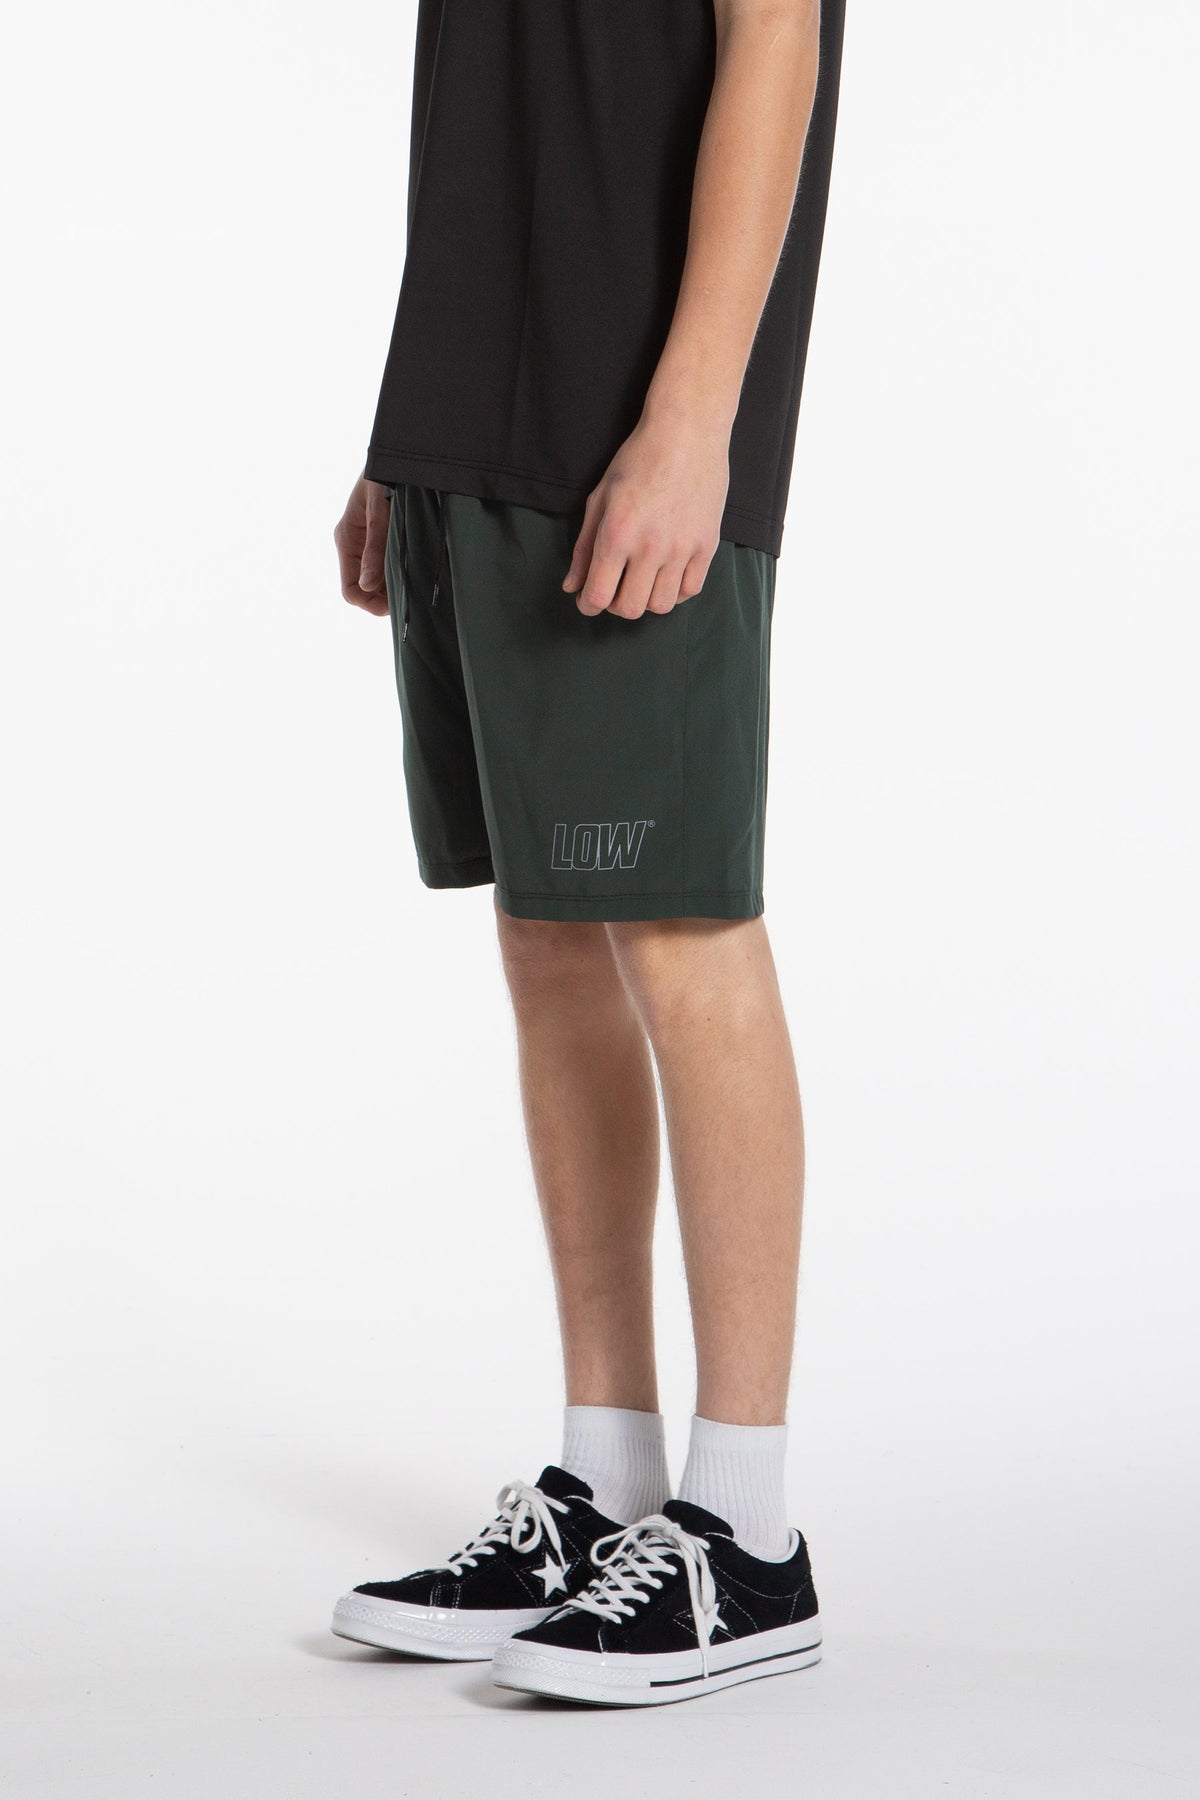 Low Giants Gym Shorts - Green